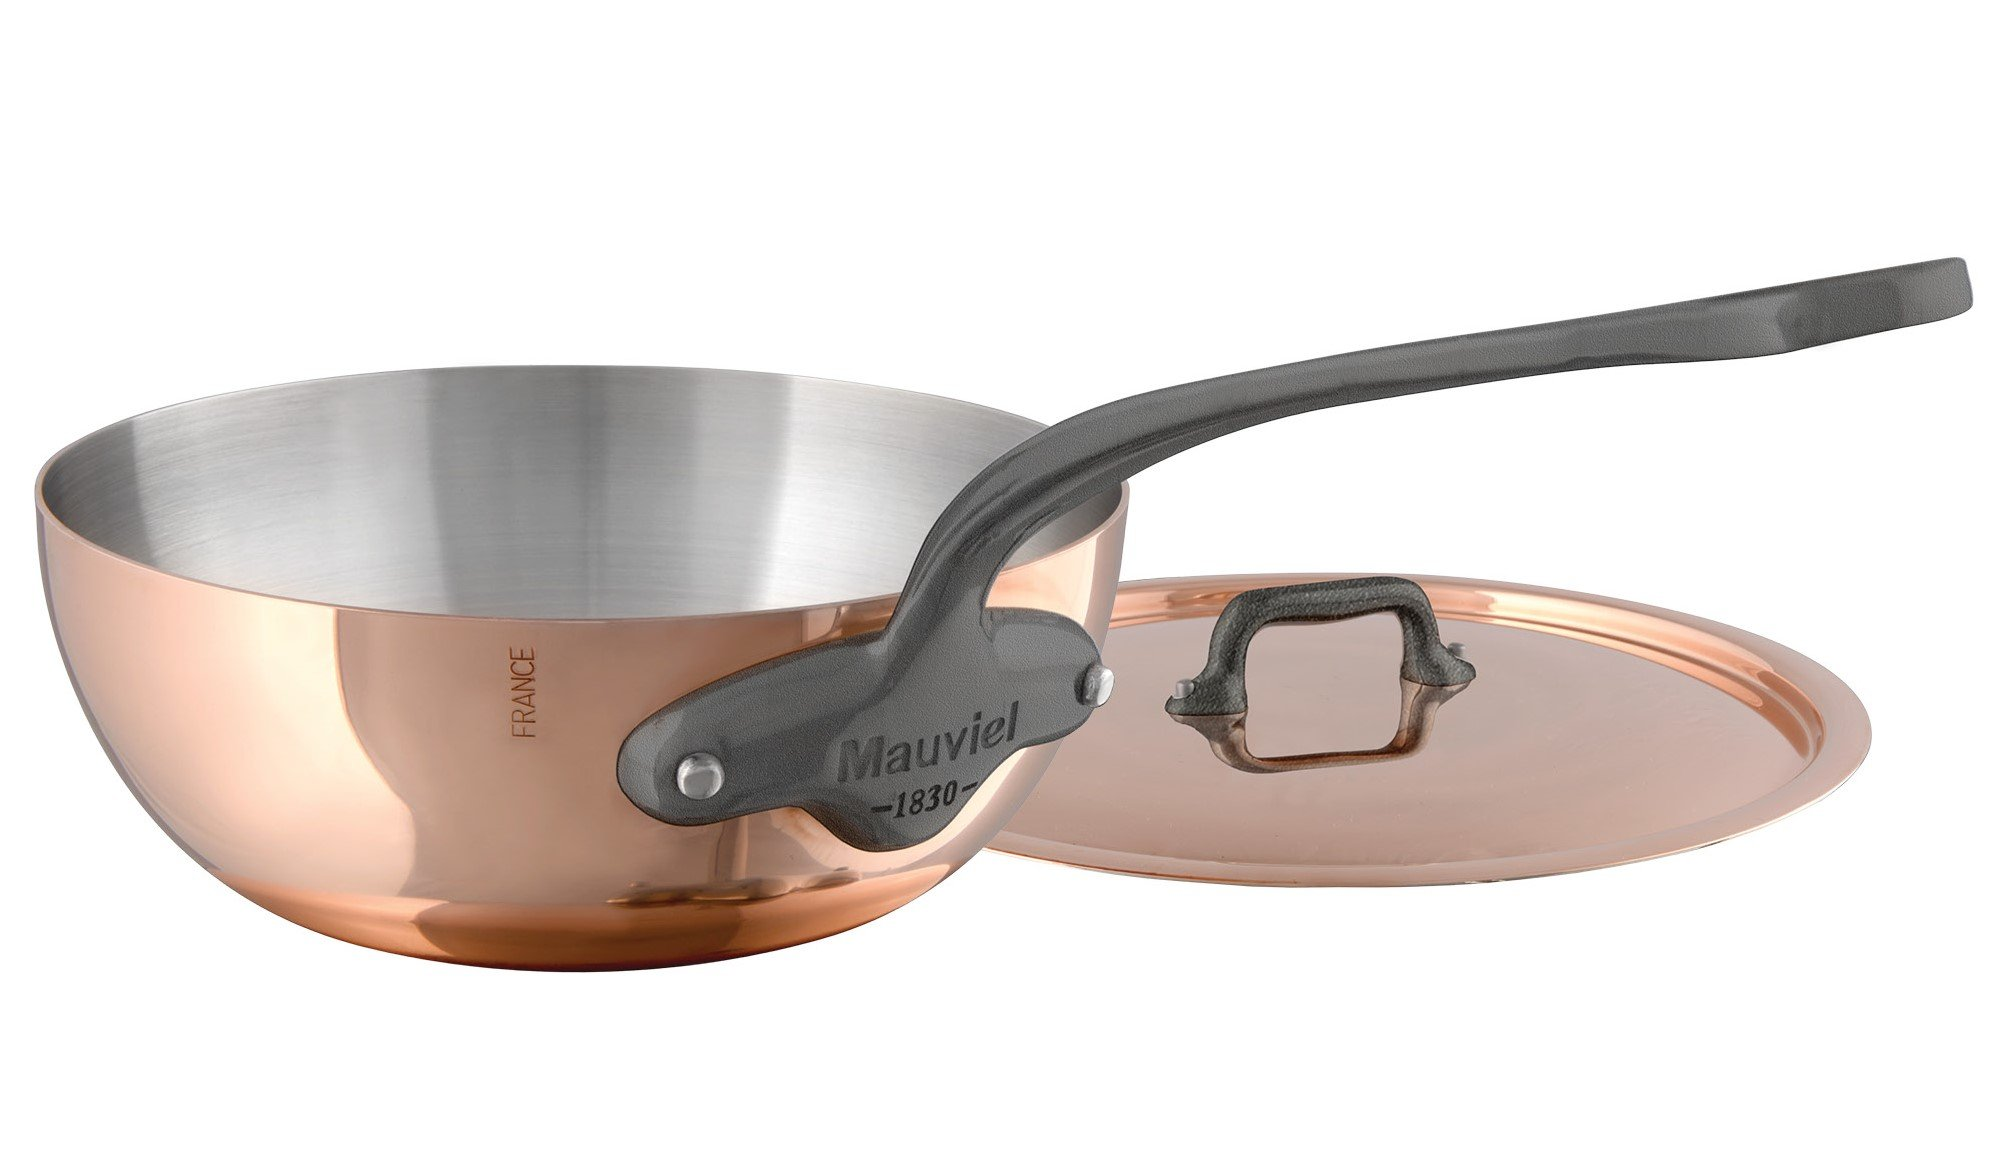 Mauviel M'Heritage M150C 6452.21 Curved Splayed Copper Saute Pan with Lid. 1.8L/1.9 quart 20cm/8'' with Cast Stainless Steel Iron Eletroplated  Handle